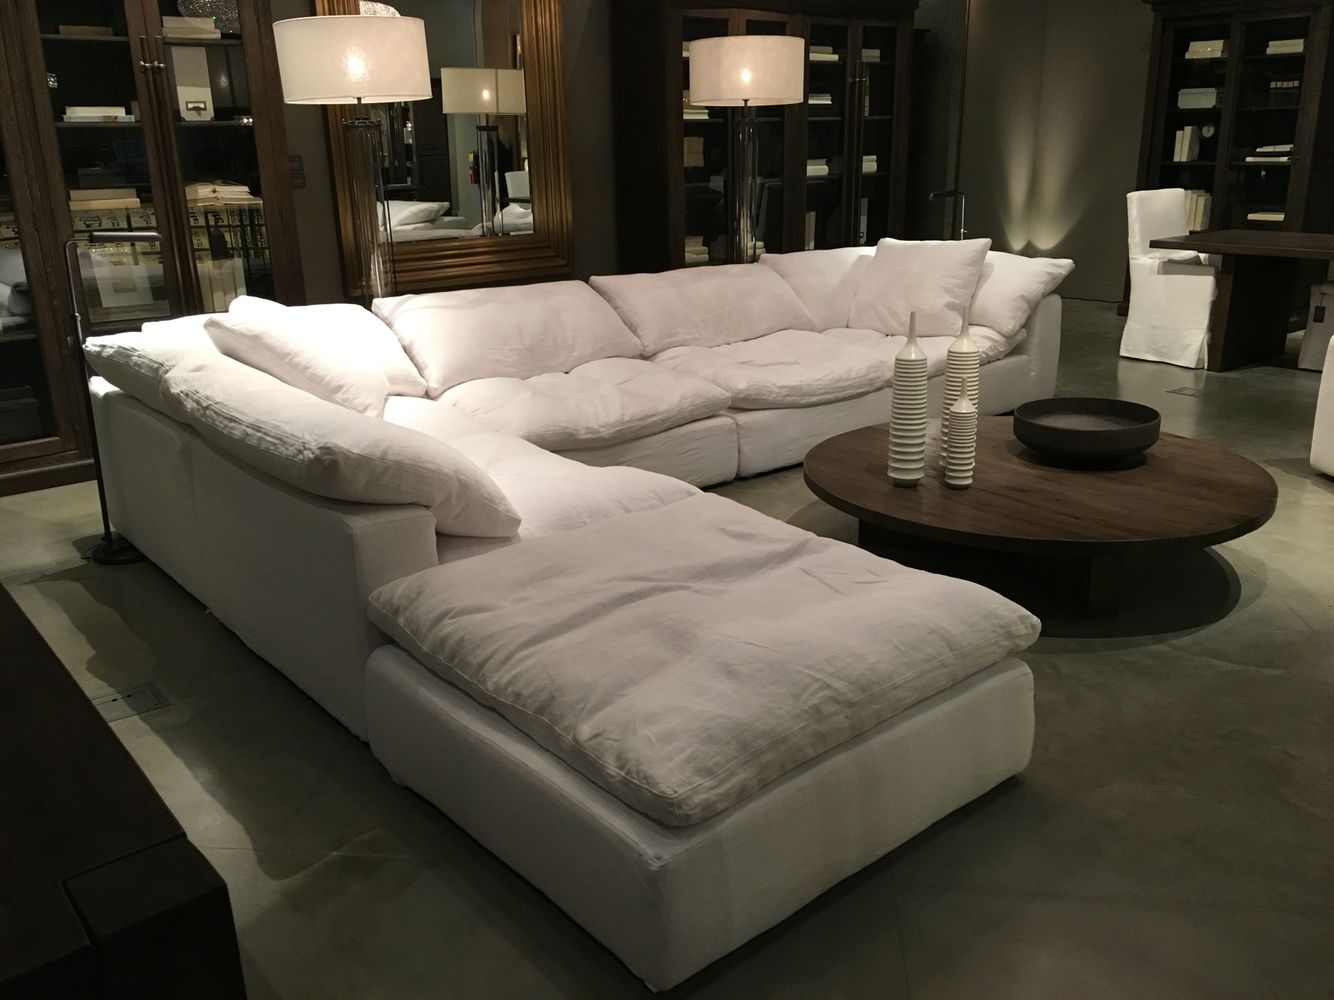 Restoration hardware sectional quotcloudquot couch future for Restoration hardware sectional sofa sale